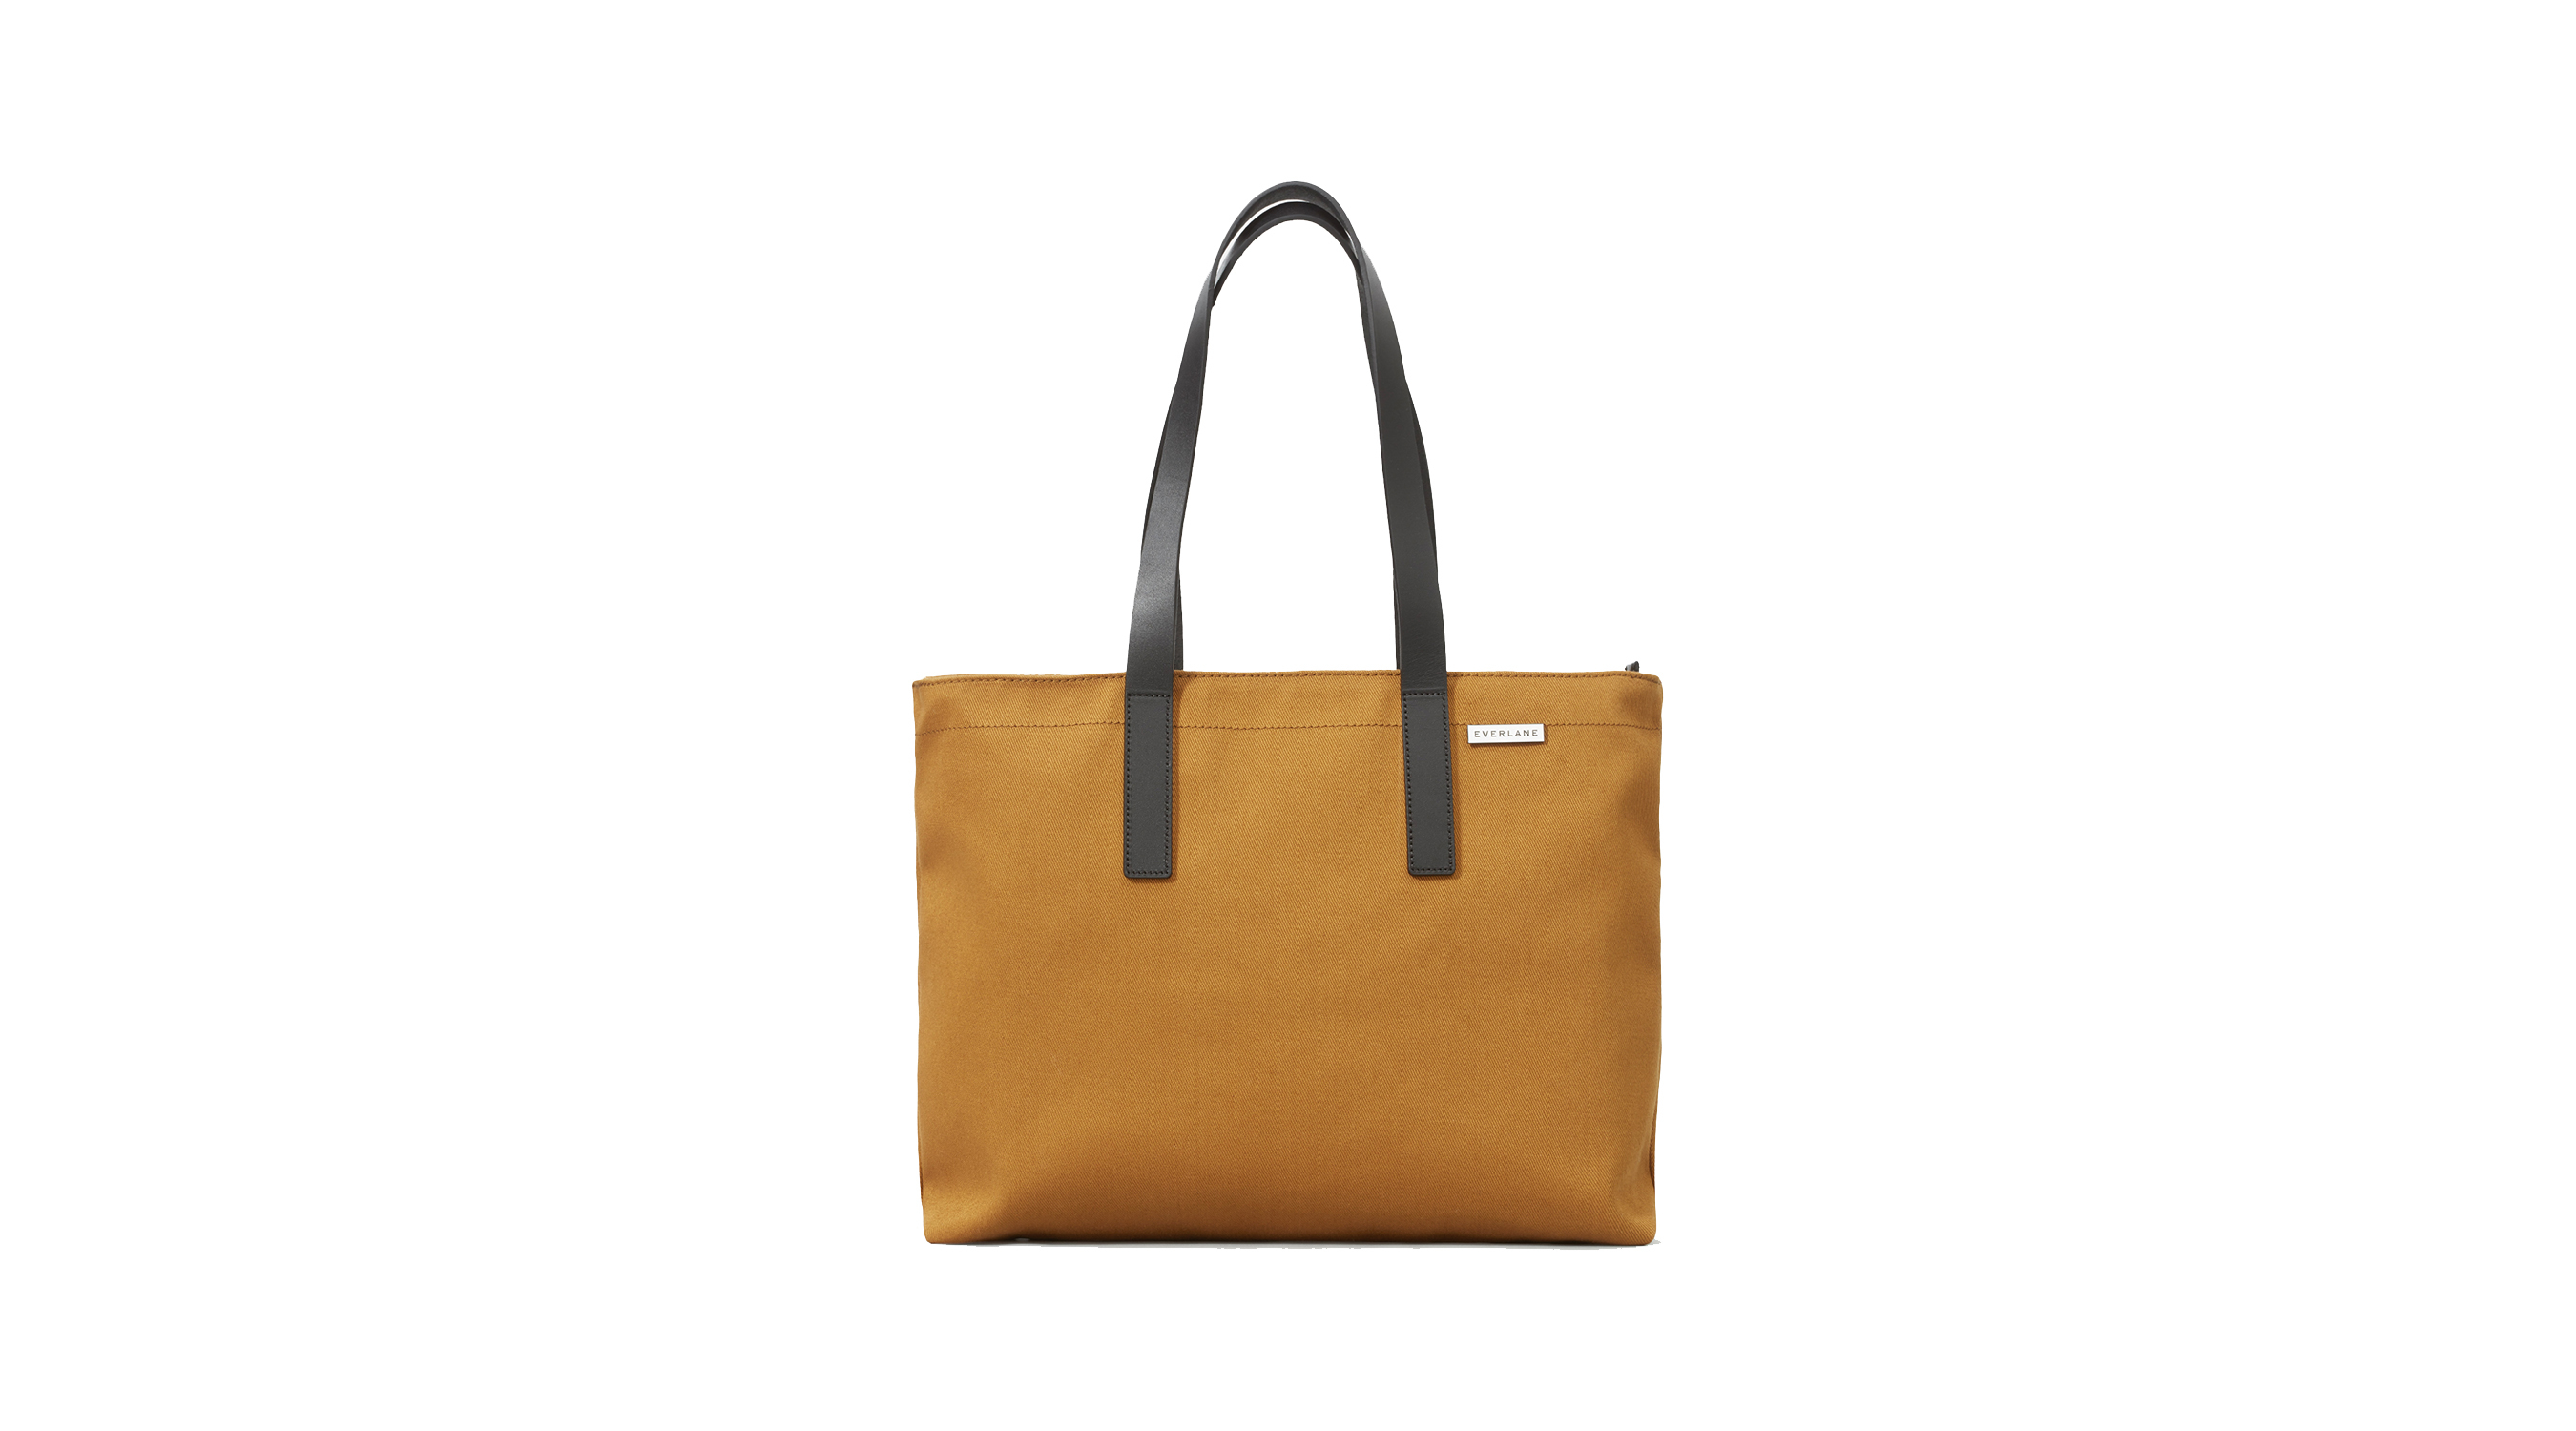 Everlane-tote.jpg?mtime=20180802150635#asset:102753